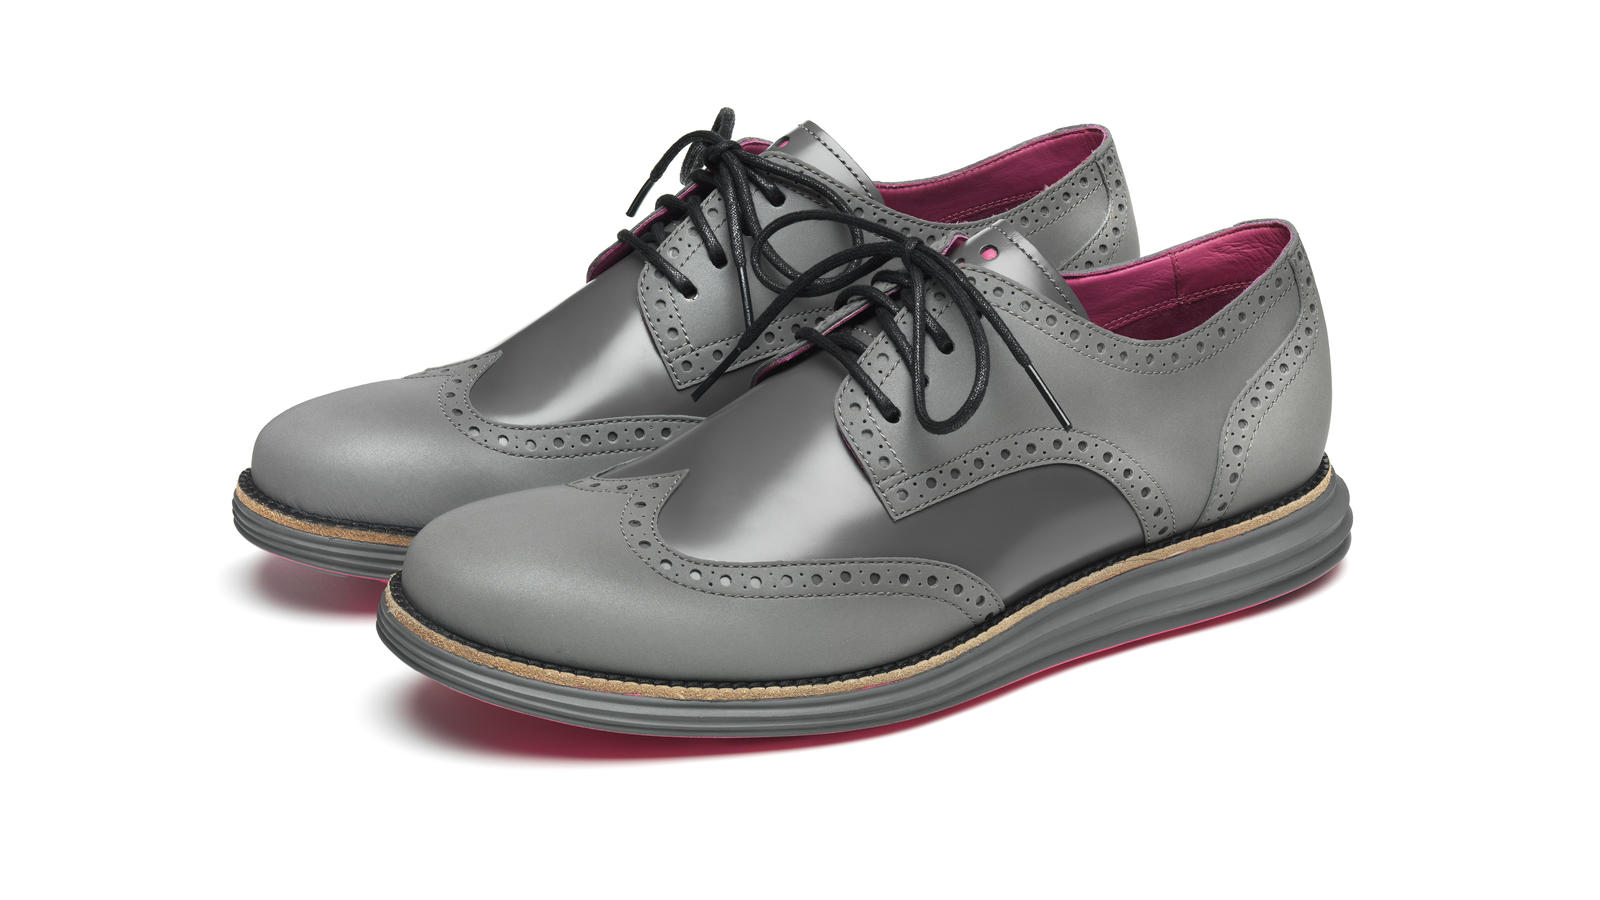 Cole Haan's Waterproof and Reflective Wingtips. Share Image